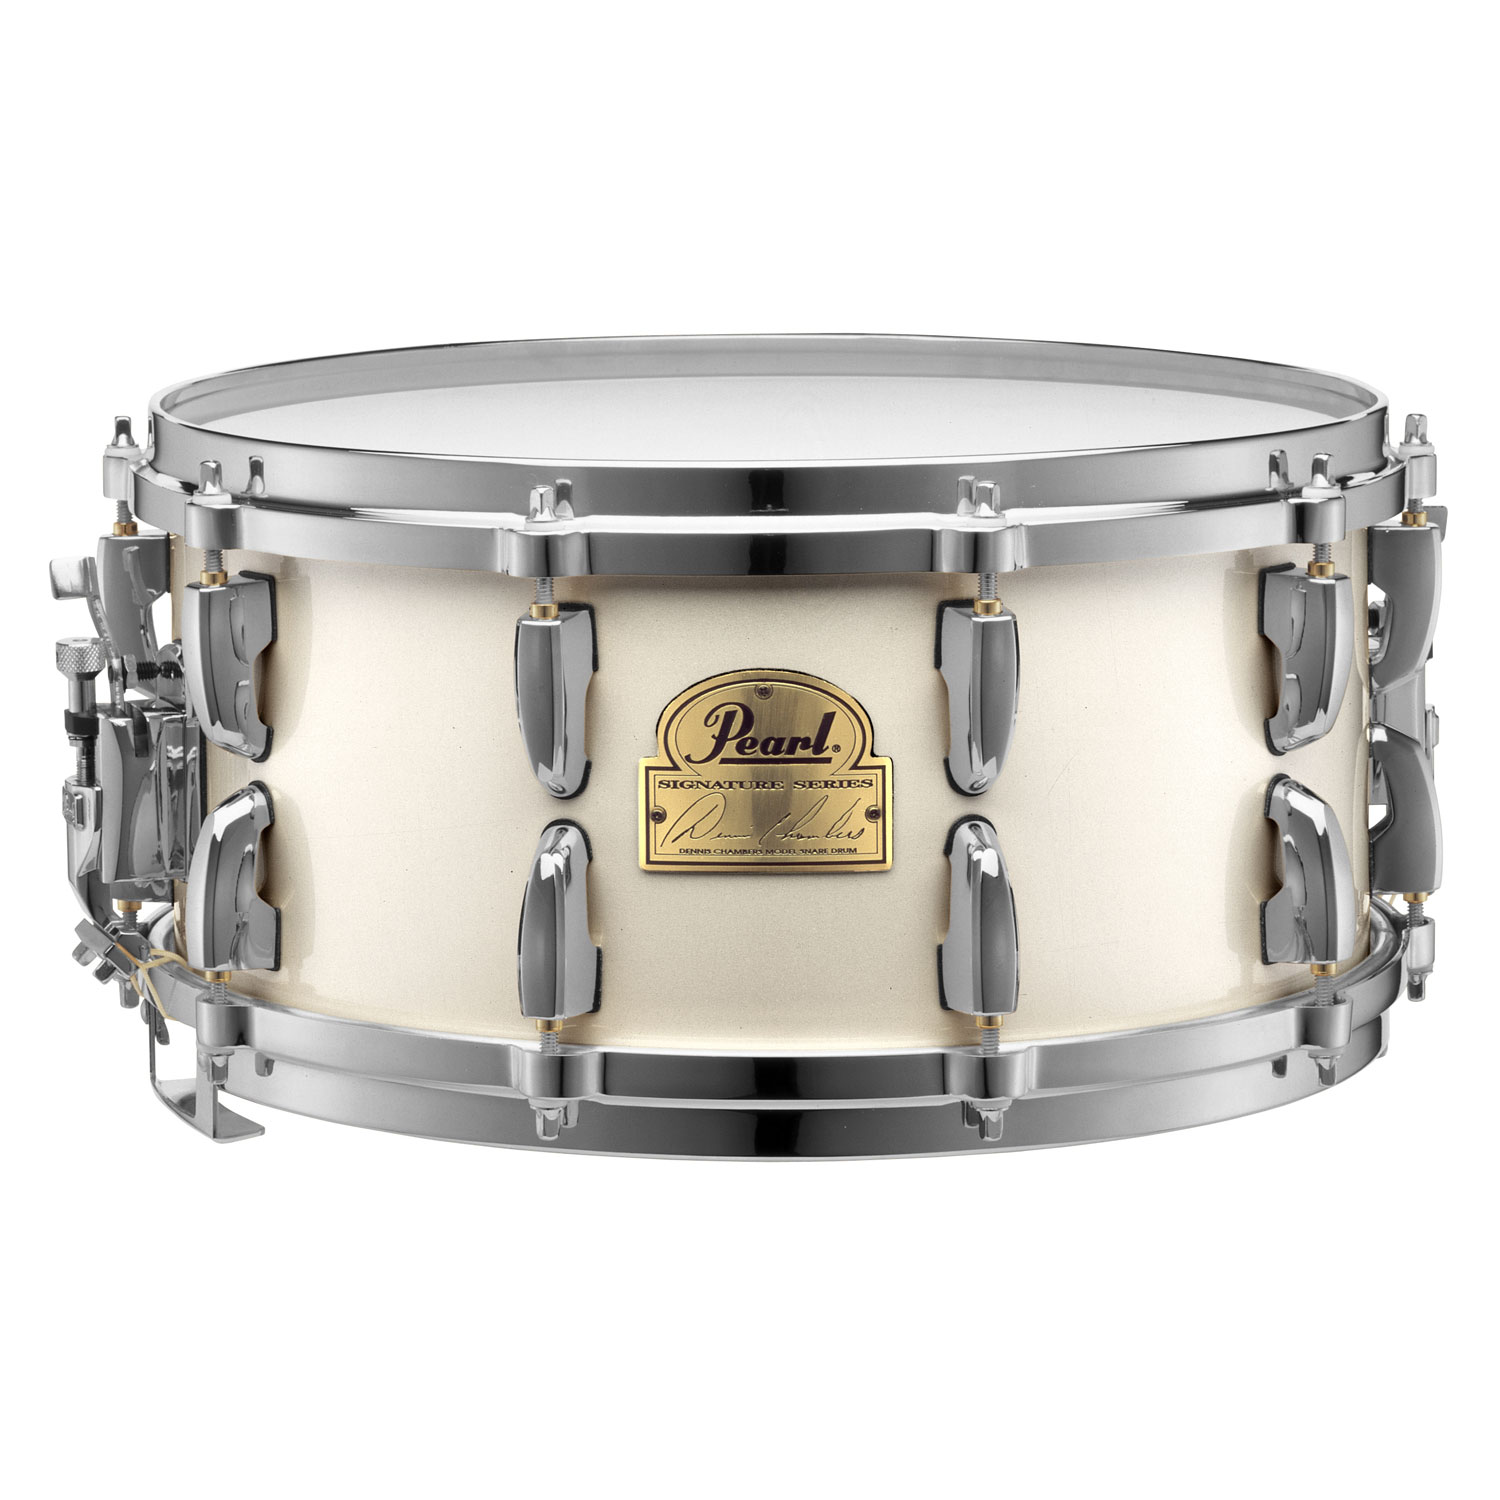 "Pearl 14"" x 6.5"" Dennis Chambers Signature Snare Drum"